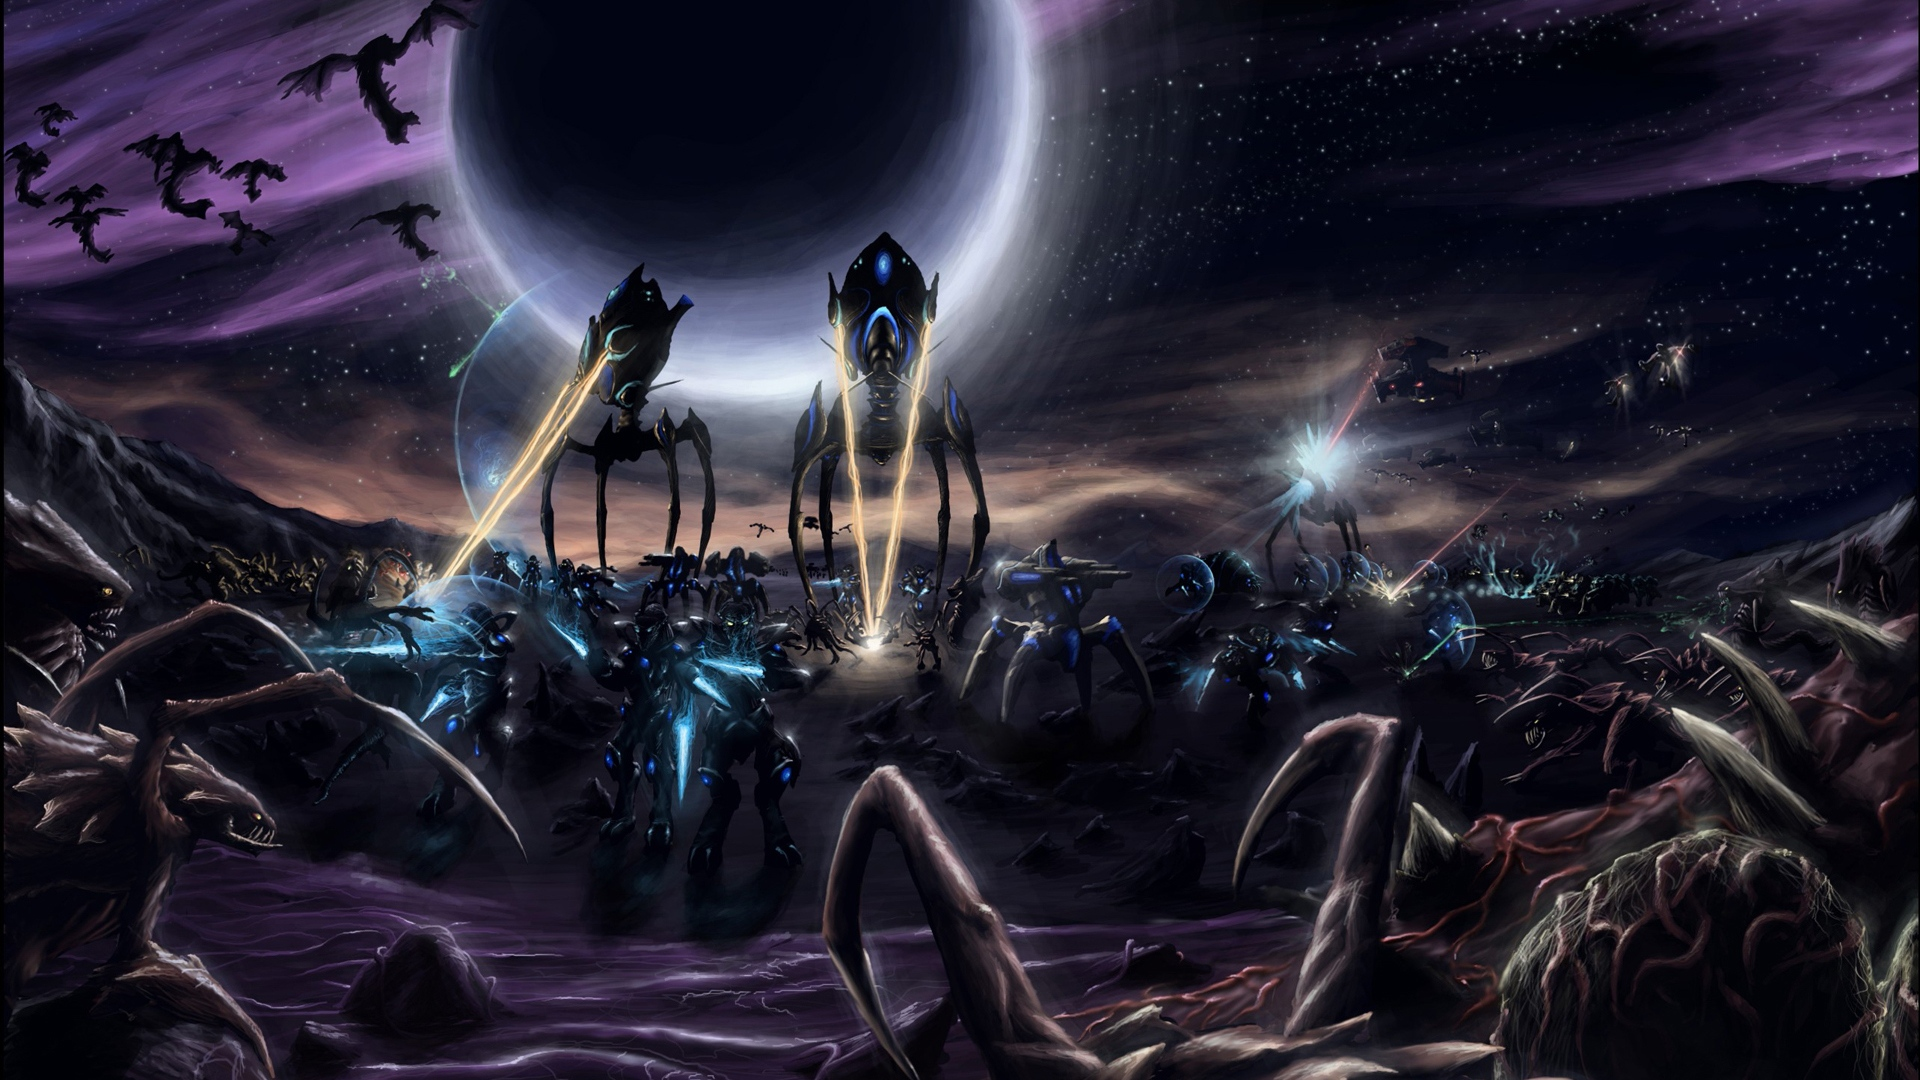 Wallpaper starcraft legacy of the void art protoss attack surface 1920x1080